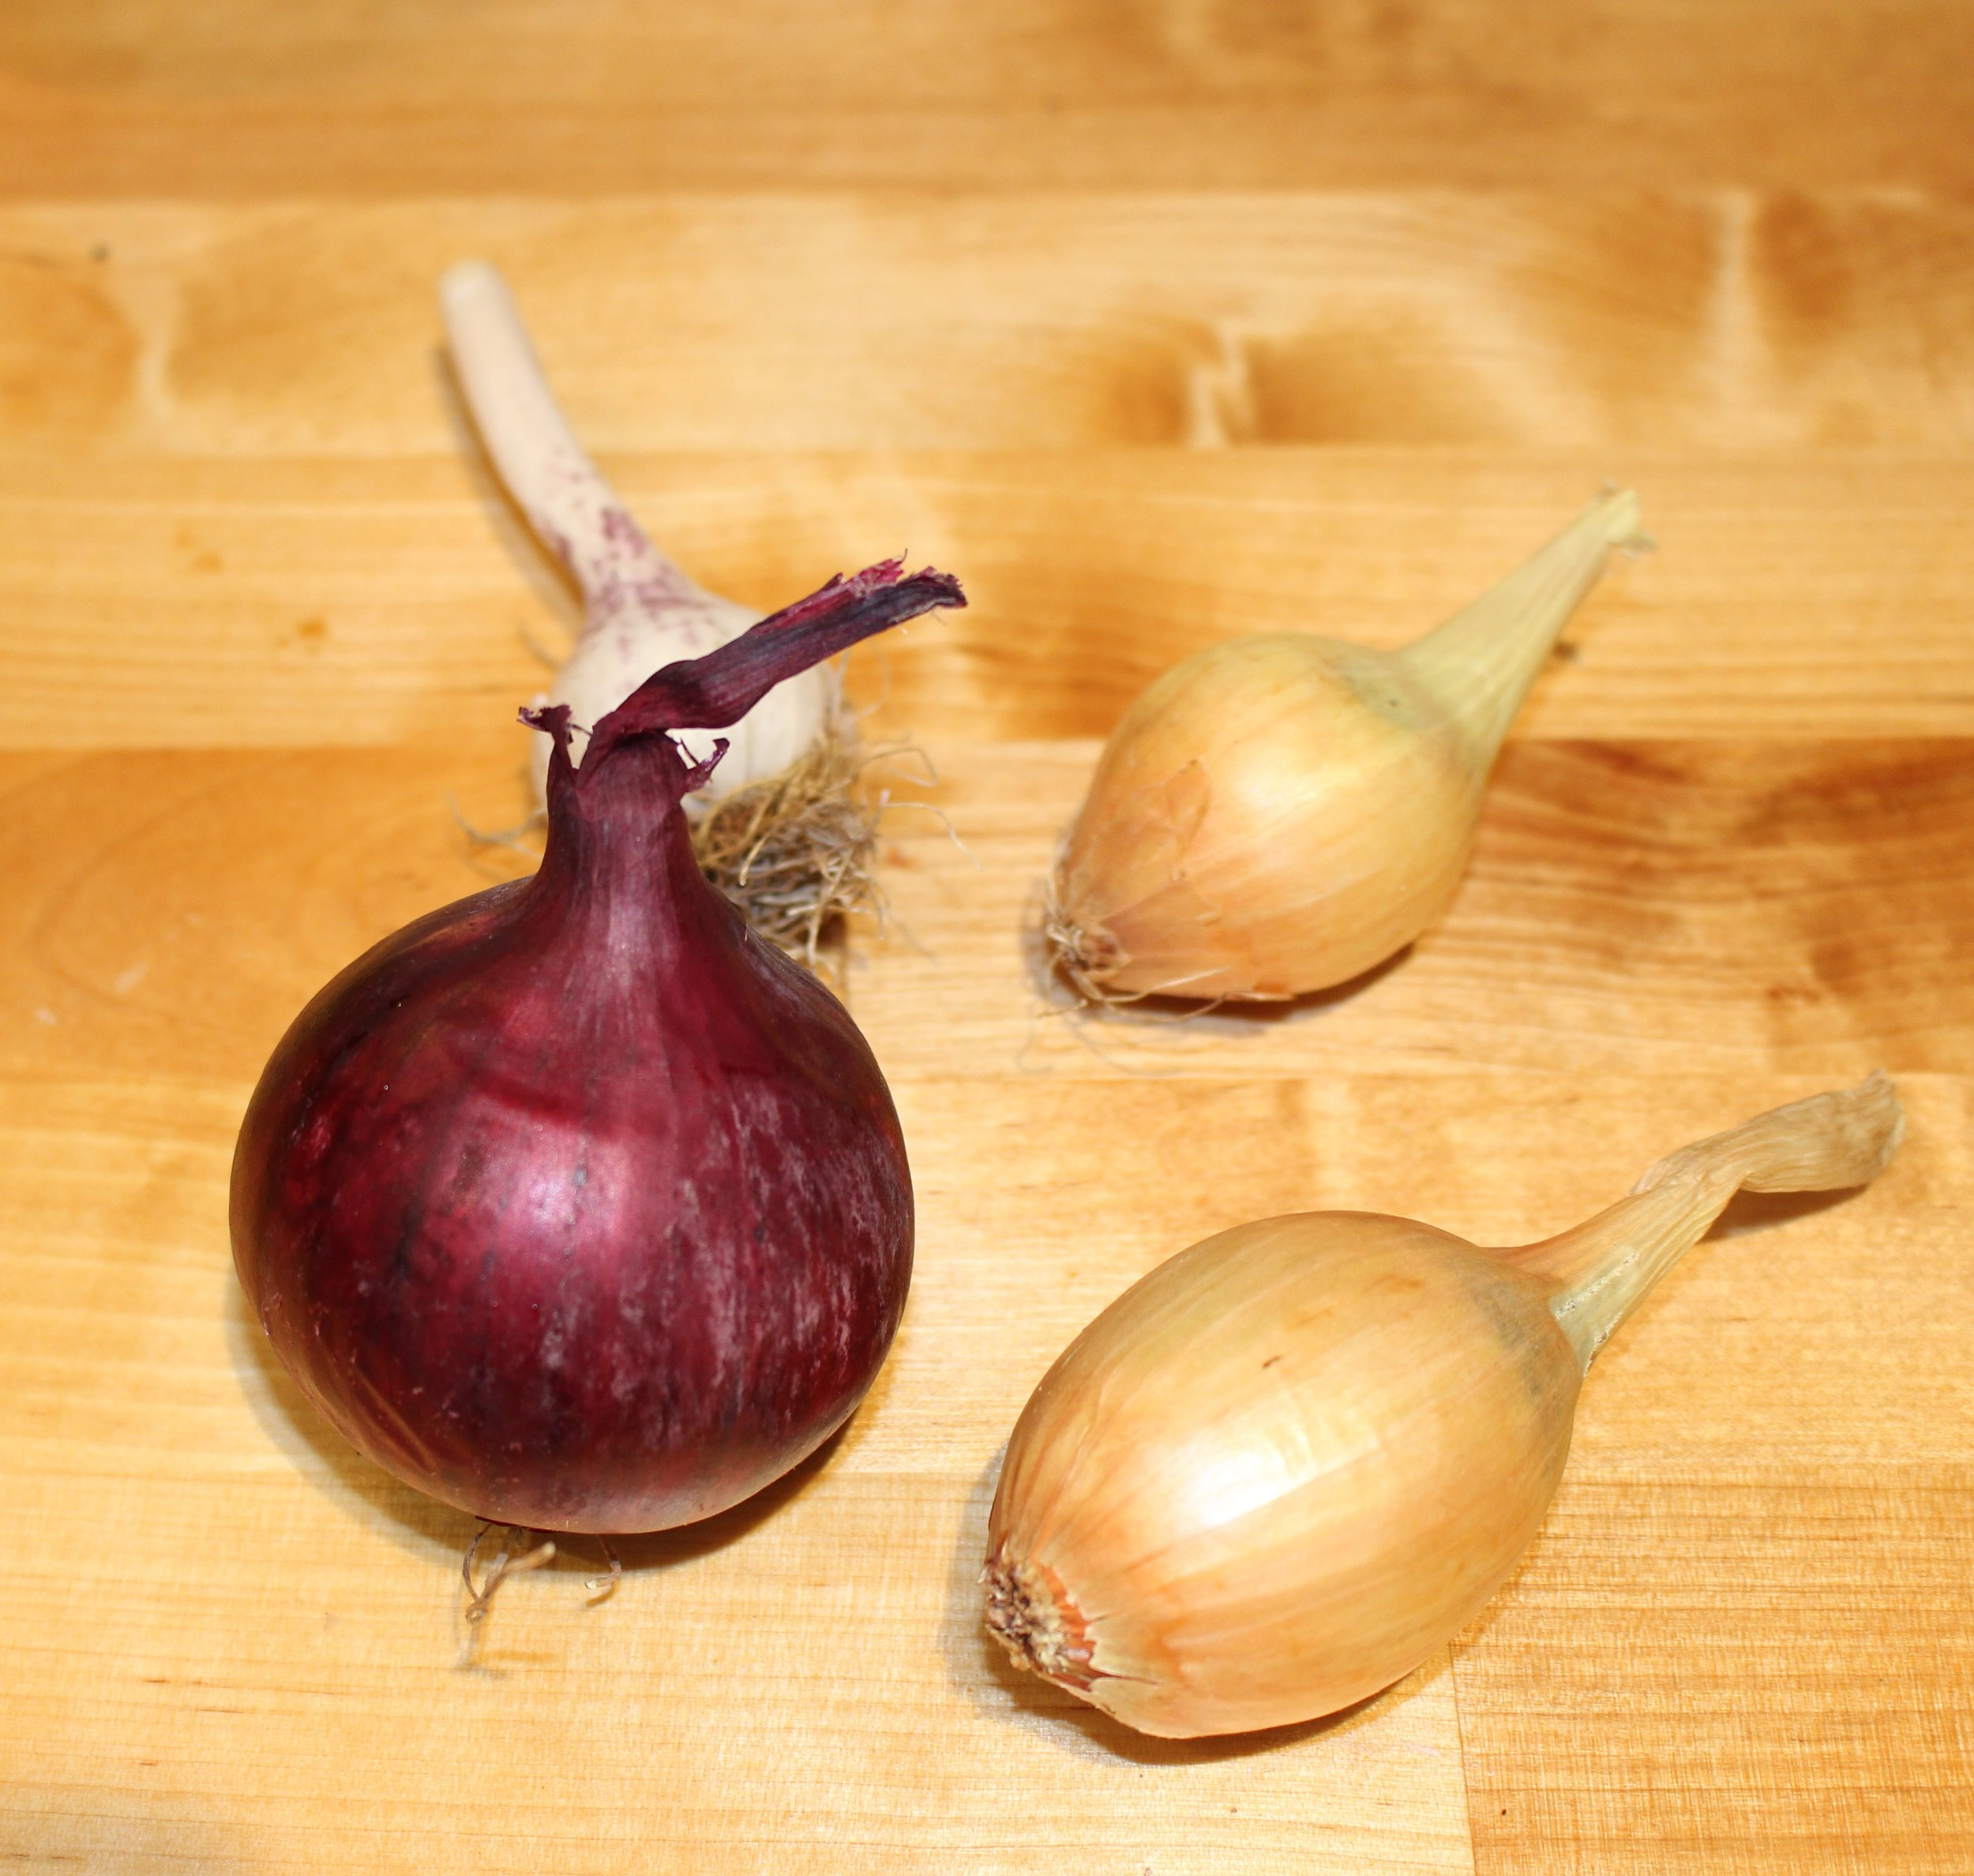 Garlic, Shallots & Red Onions all from my dad's garden